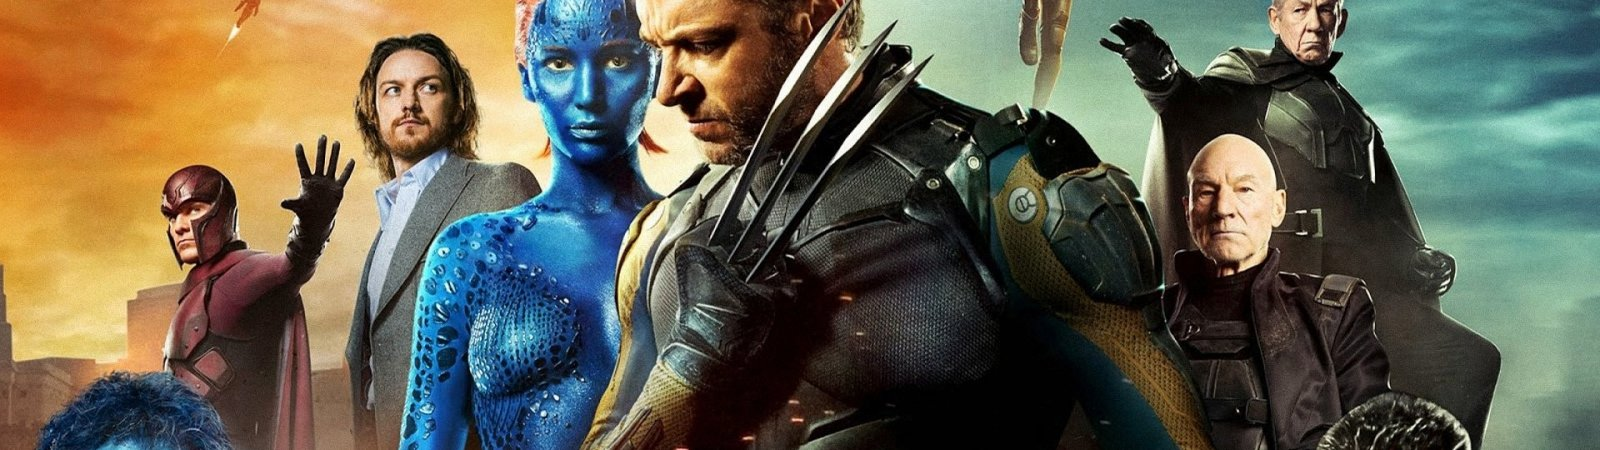 Photo du film : X-Men : Days of Future Past